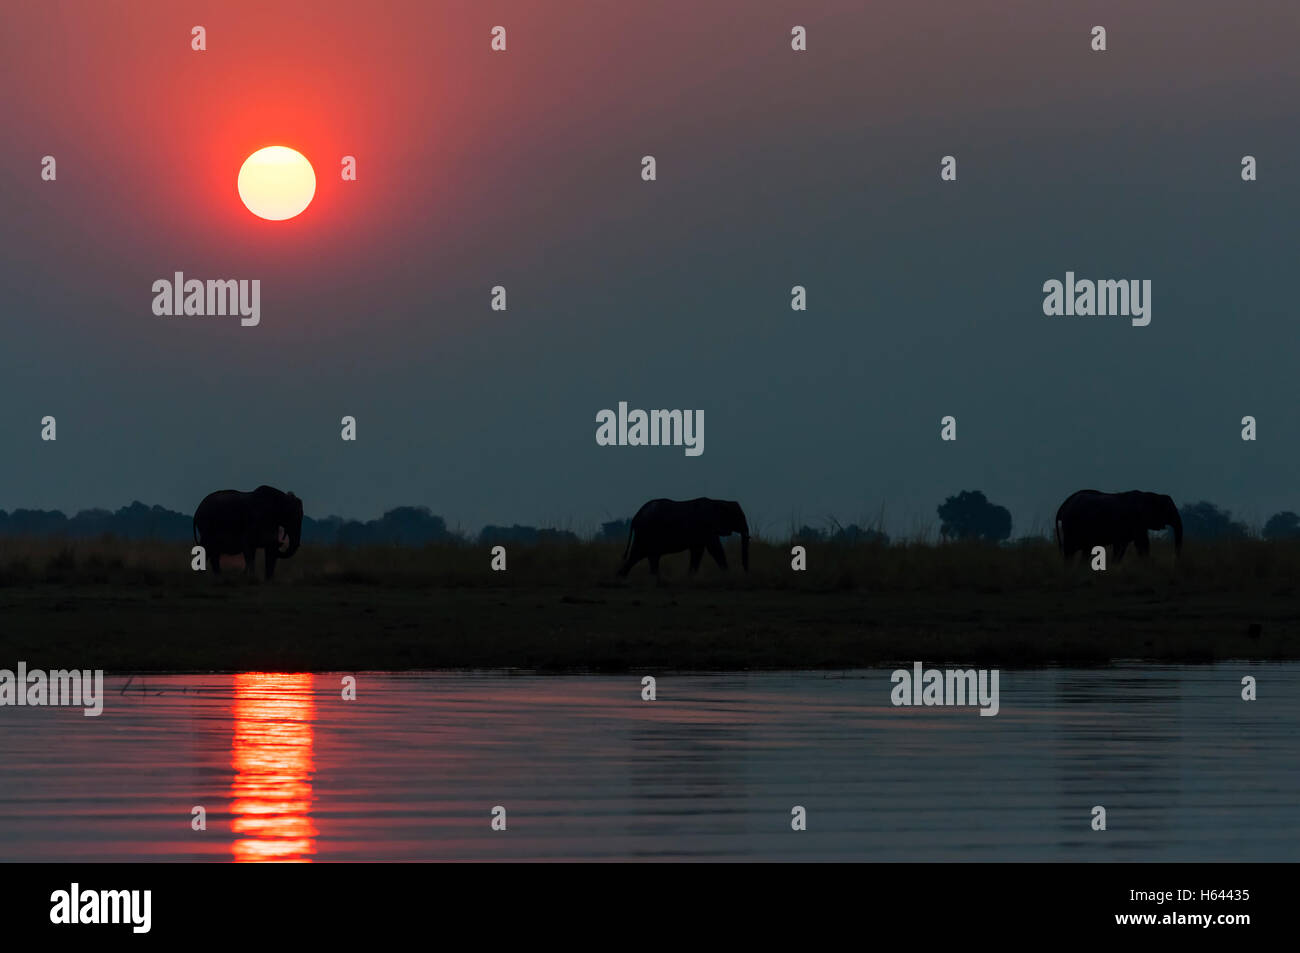 Silhouette of a herd of elepanhts at sunset in the Chobe National Park in Botswana; - Stock Image